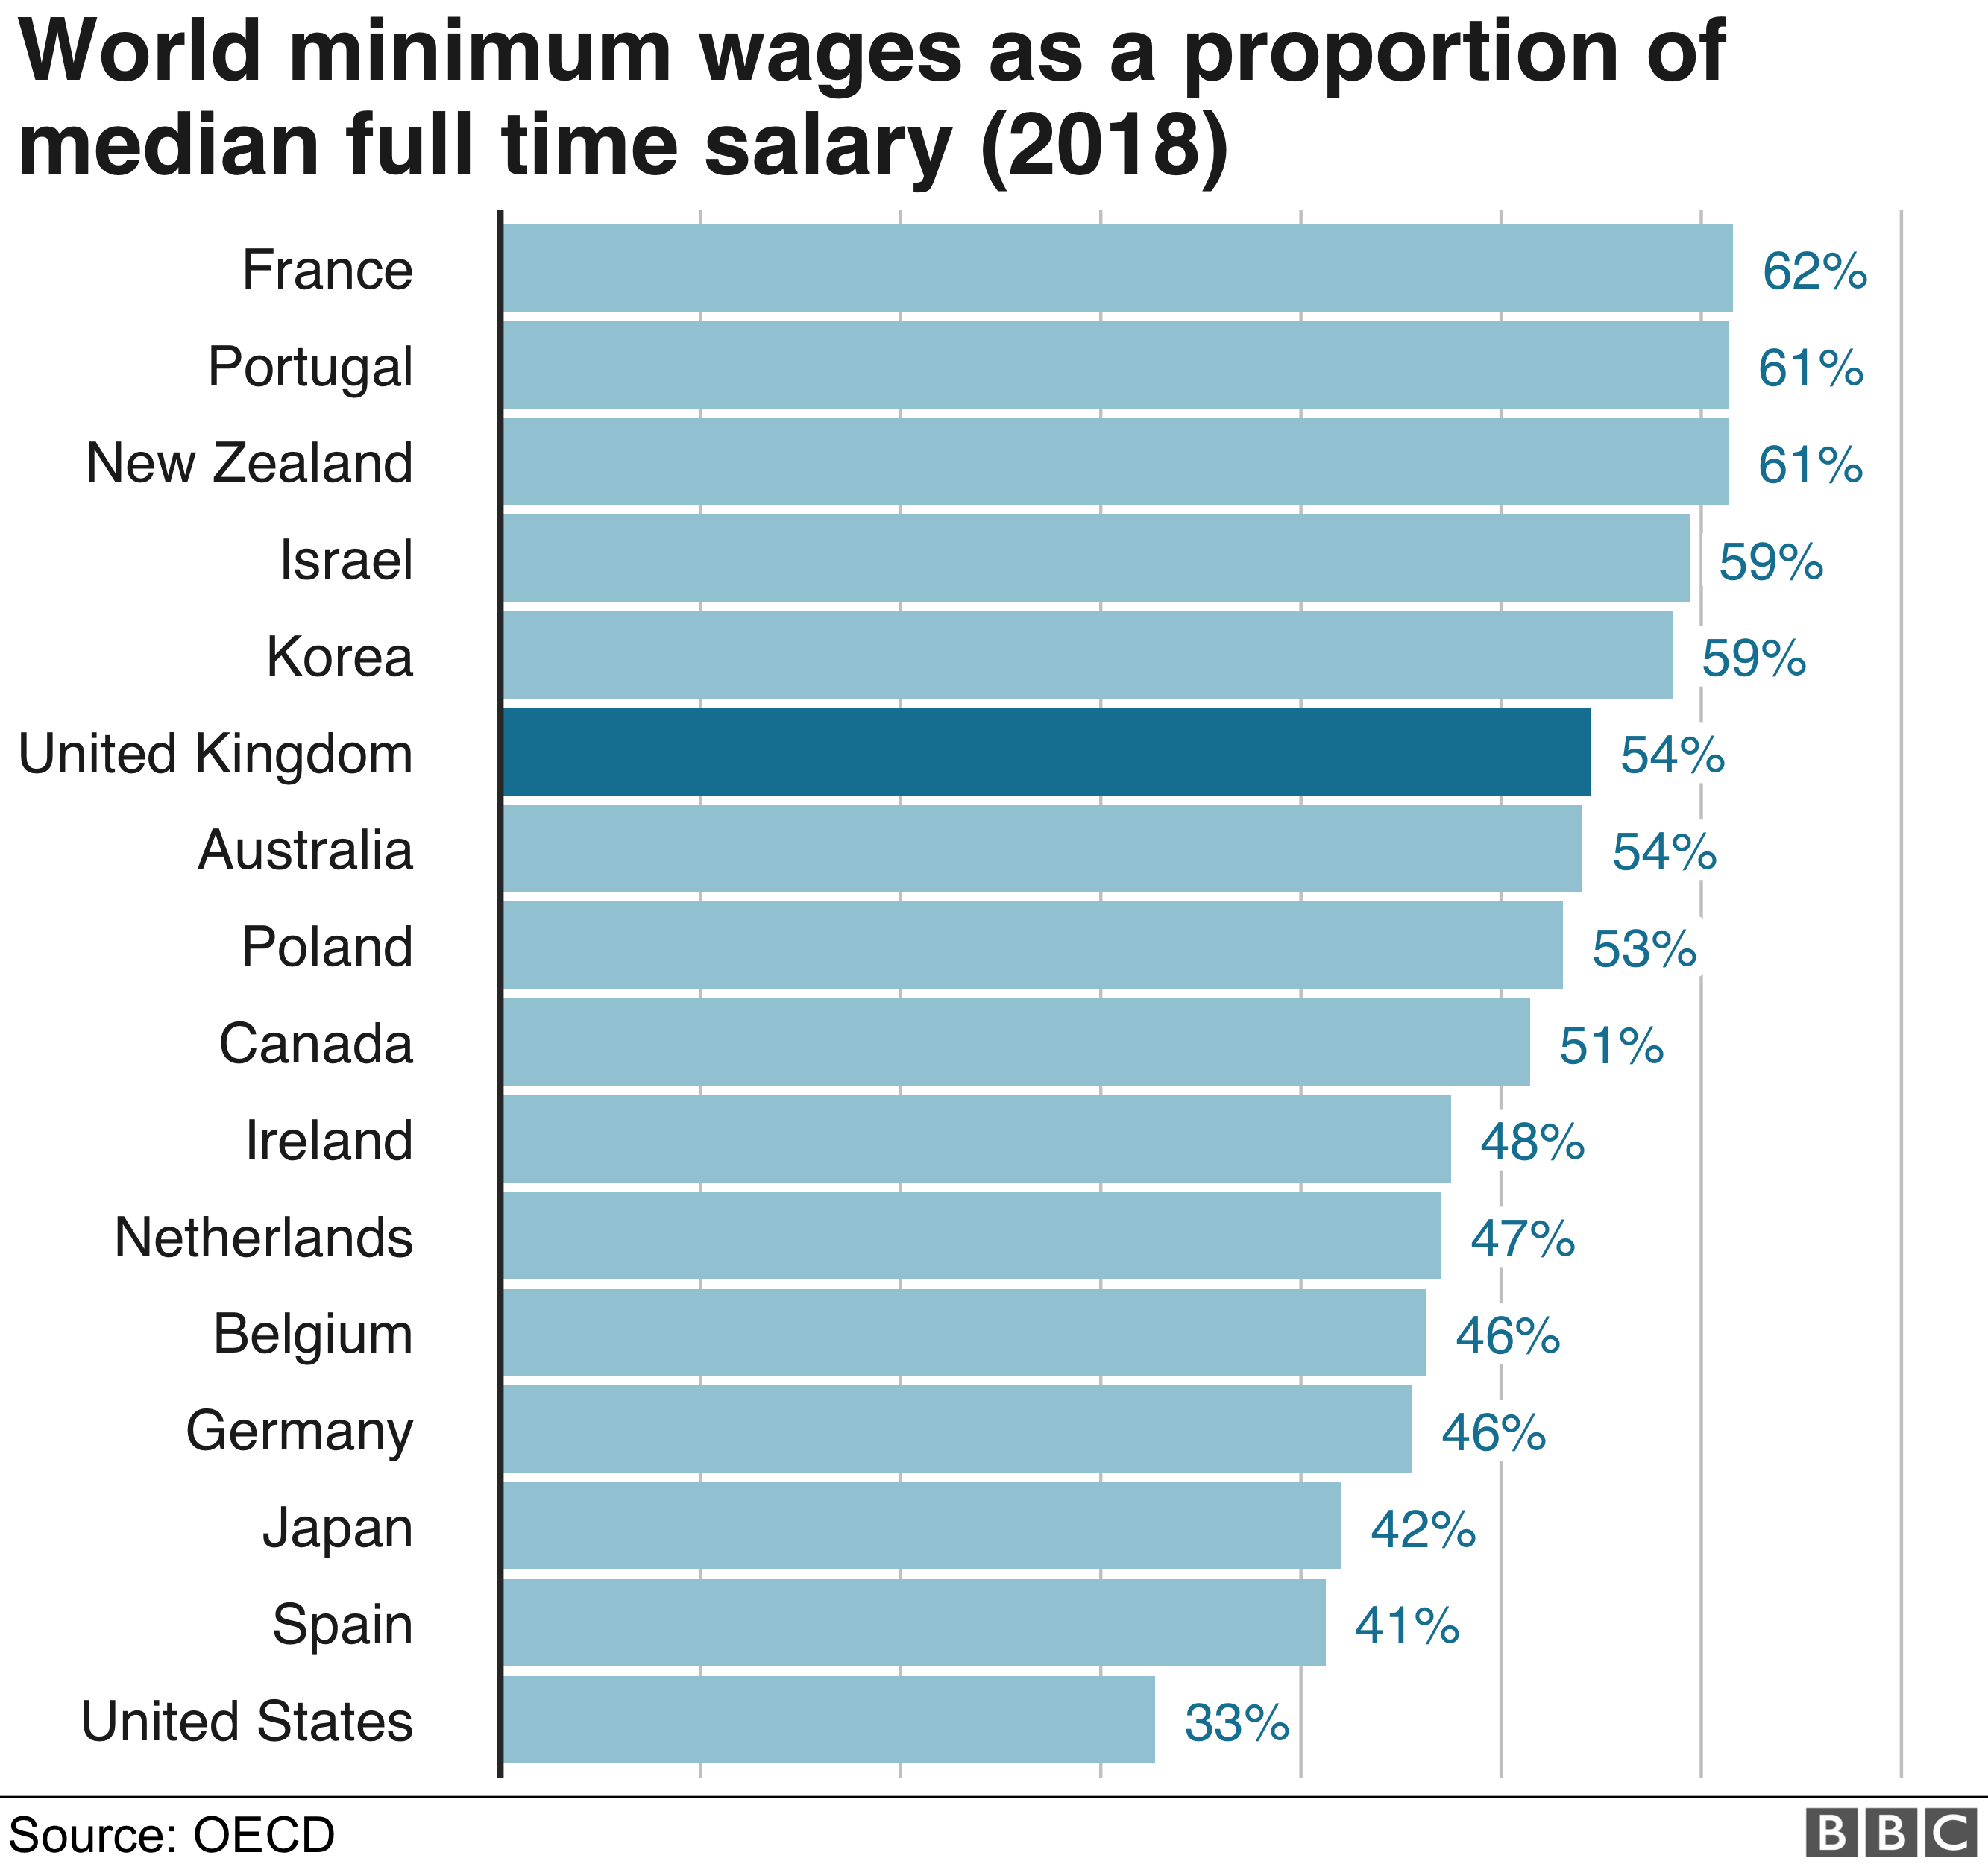 Minimum wage: How high could the lowest salaries go? - BBC News